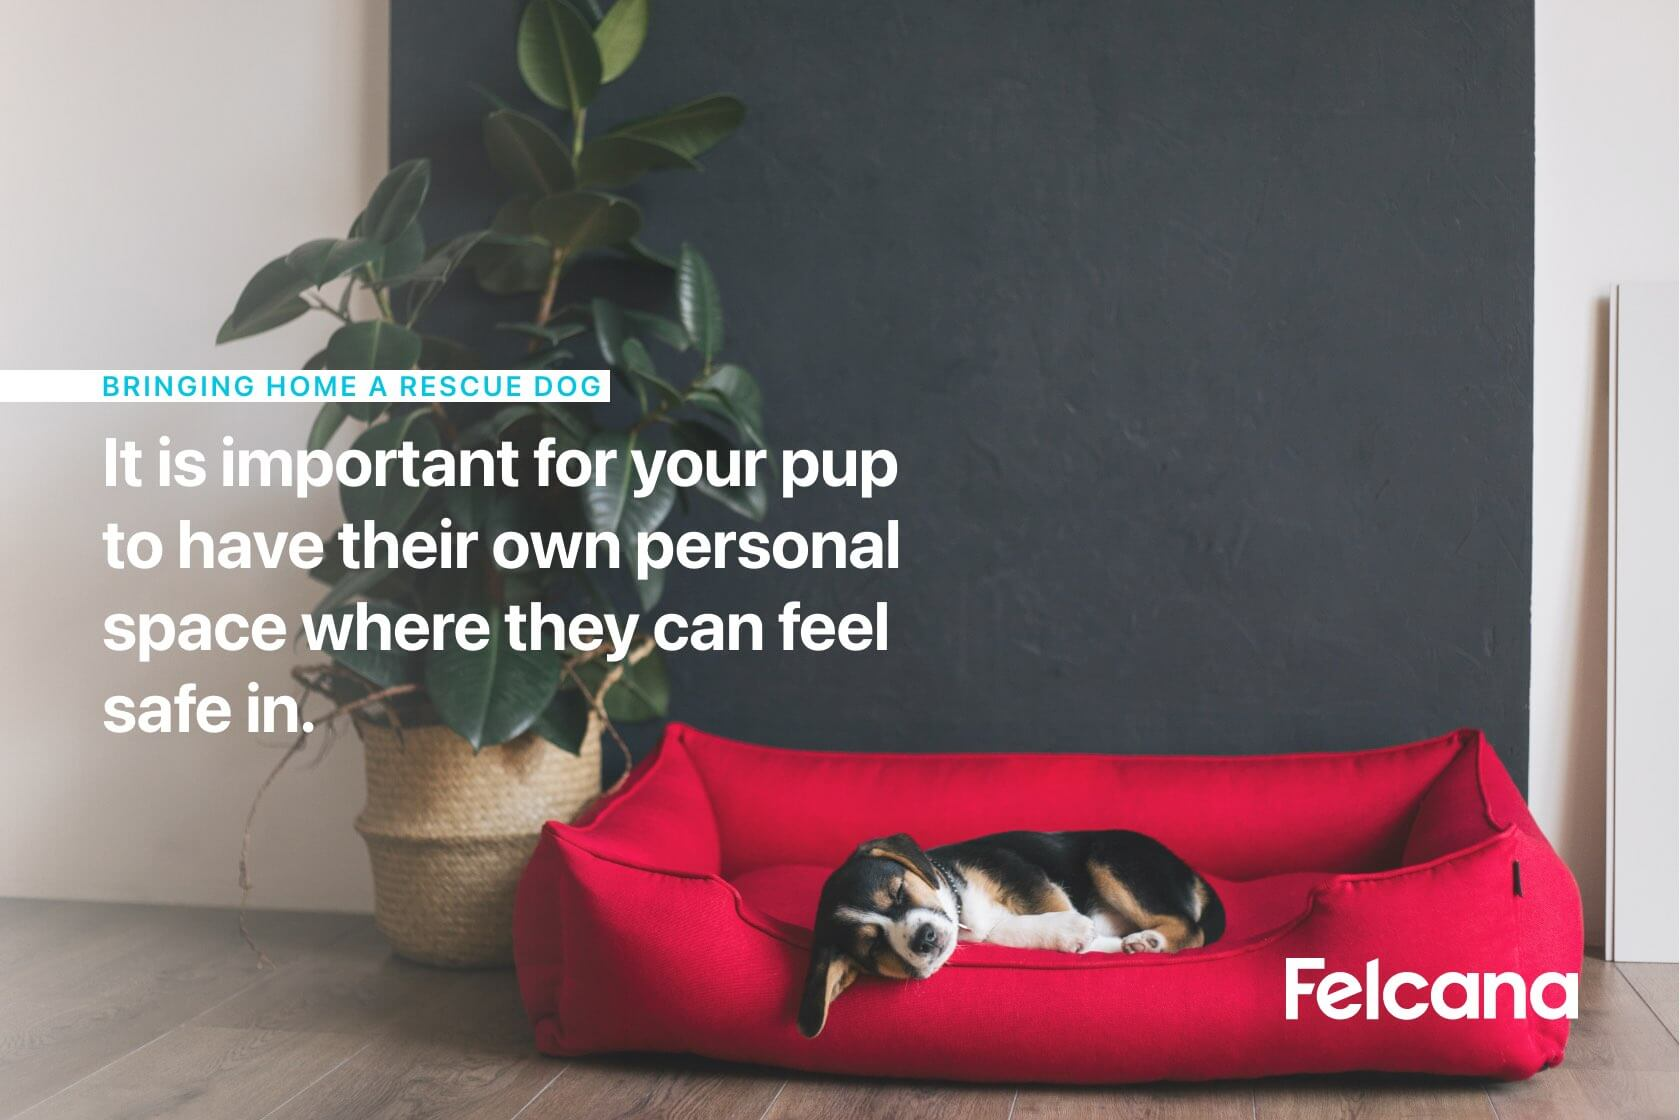 It is important for your pup to have their own personal space where they can feel safe in